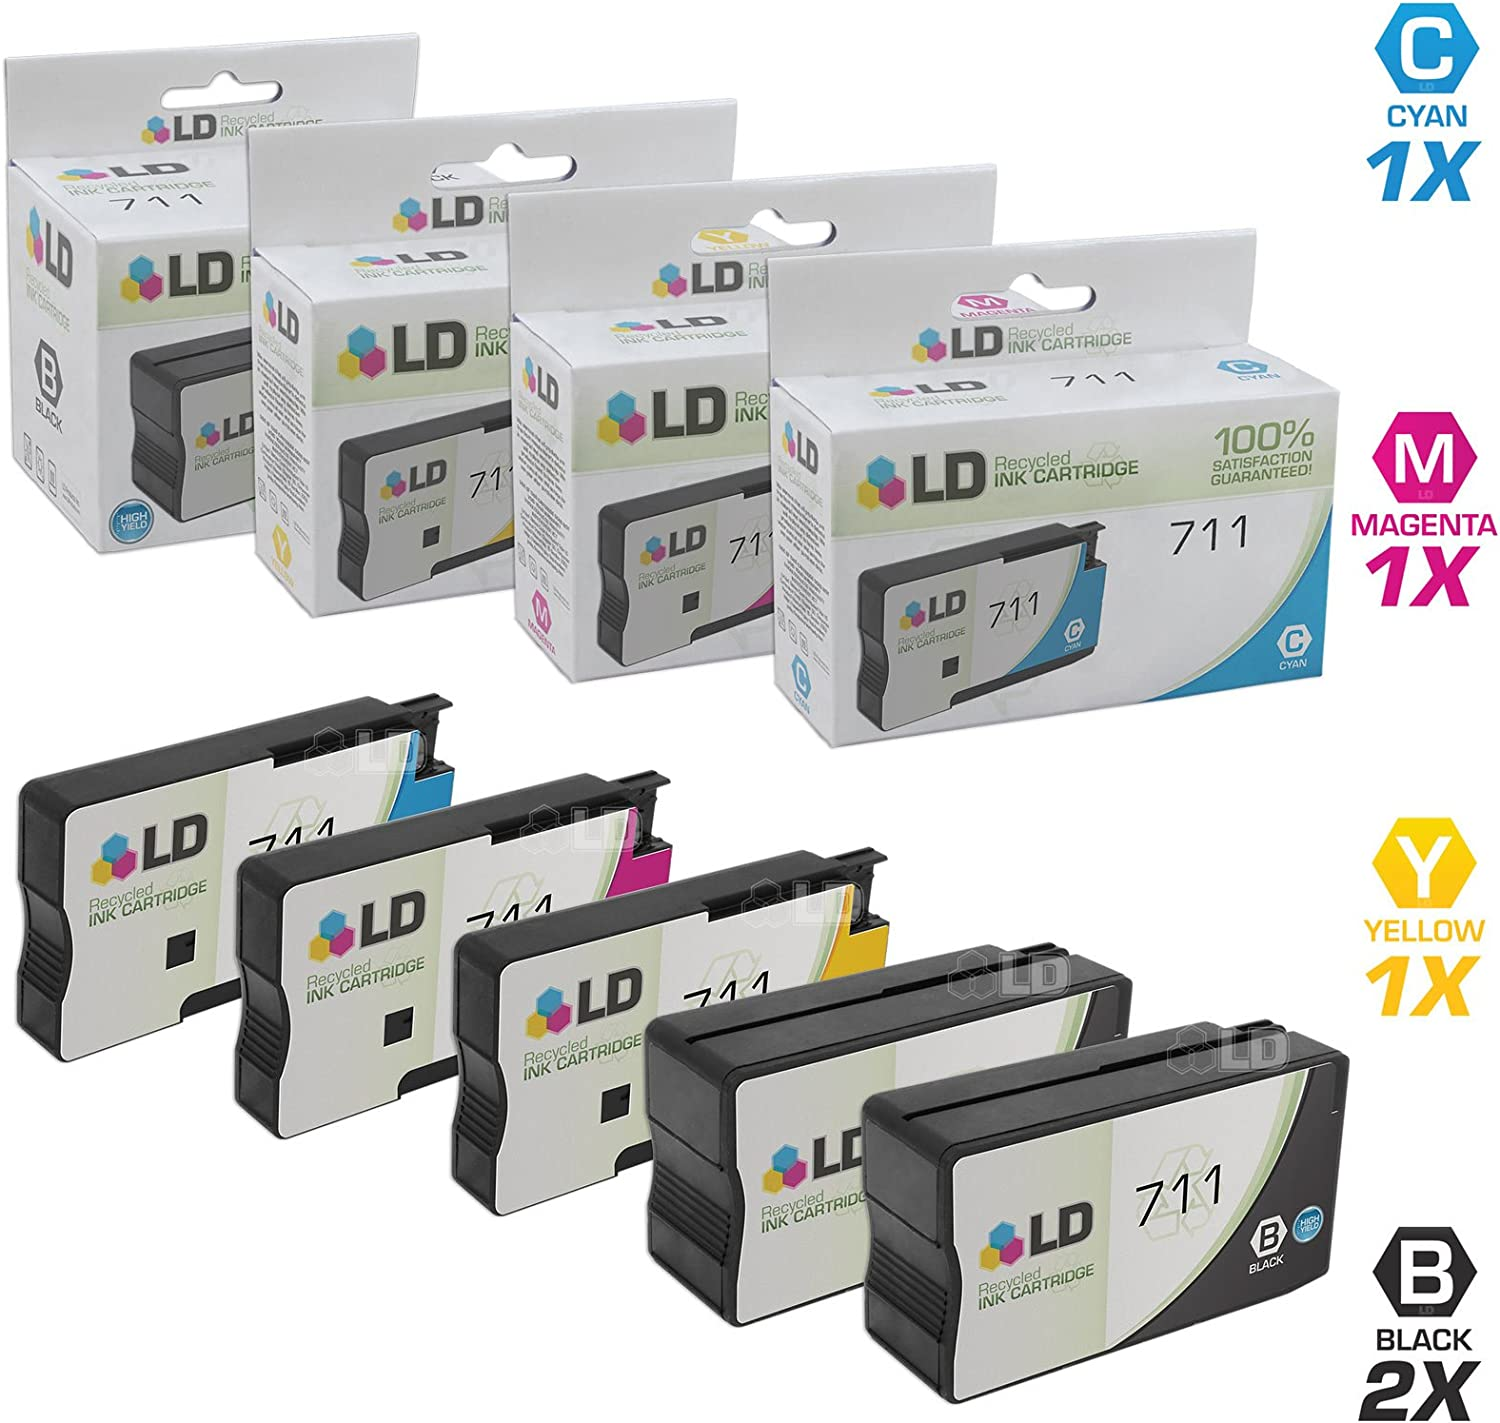 LD Remanufactured Ink Cartridge Replacement for HP 711 (2 Black, 1 Cyan, 1 Magenta, 1 Yellow, 5-Pack)